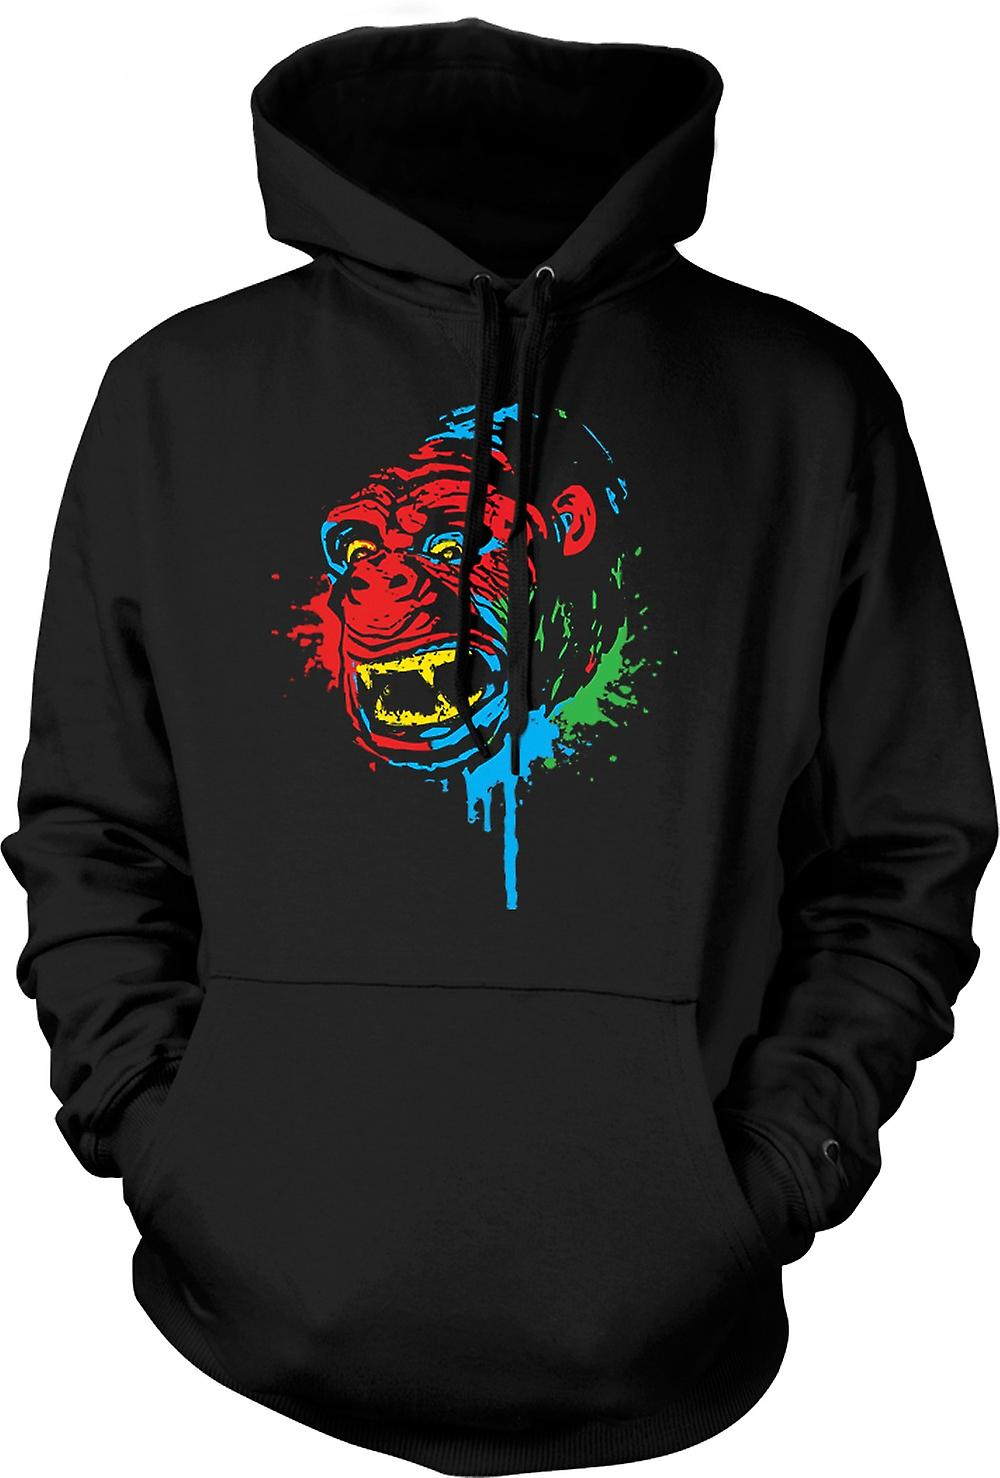 Barn Hoodie - Pop Art - Ape Gorilla - Cool Design